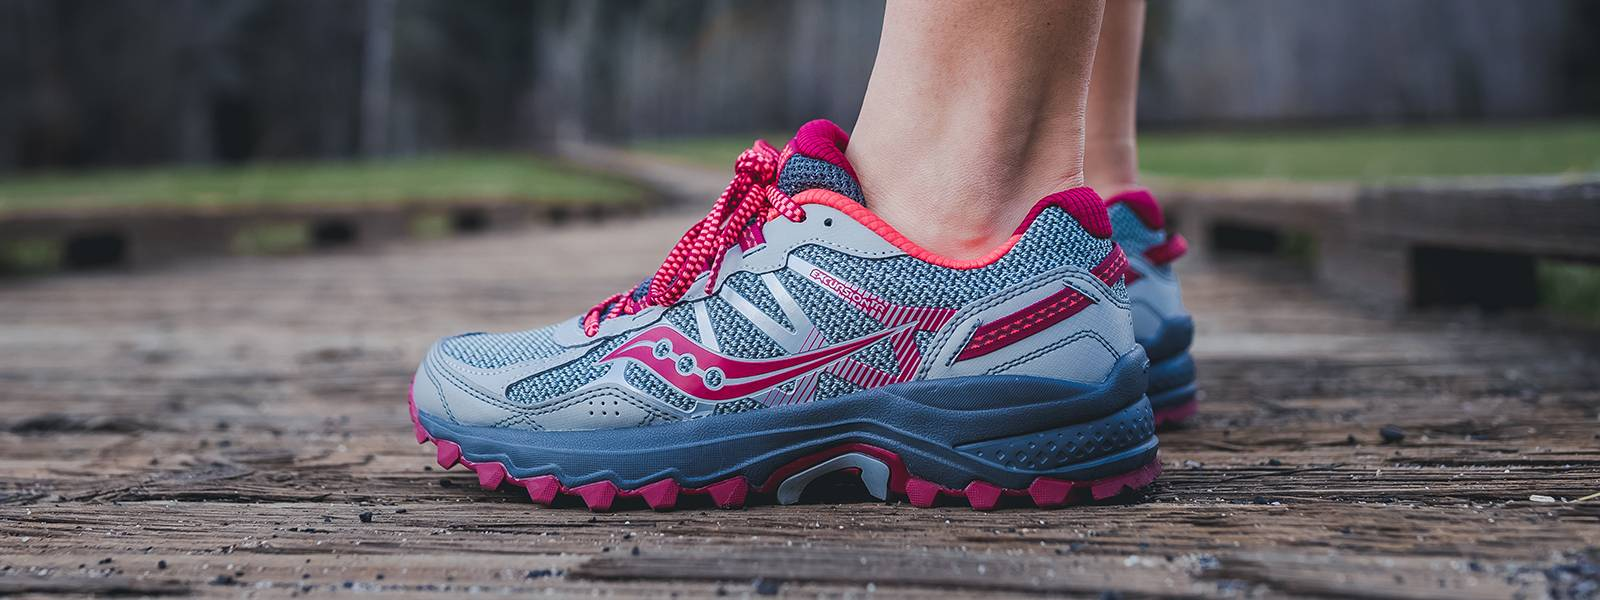 saucony excursion tr11 womens